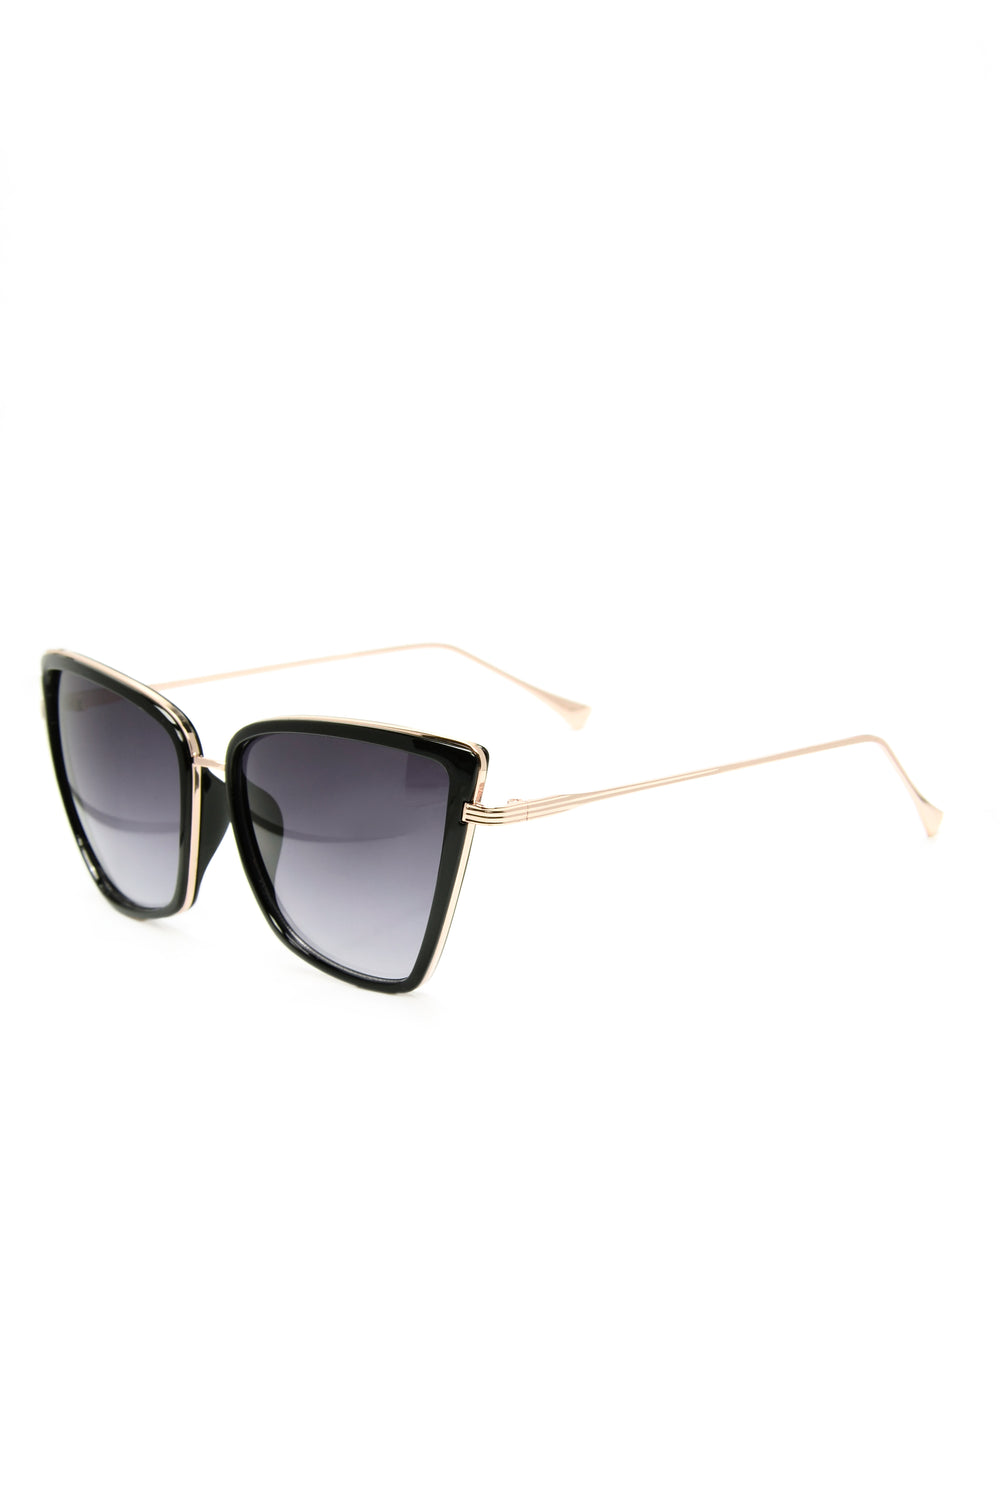 On The Low Sunglasses - Black